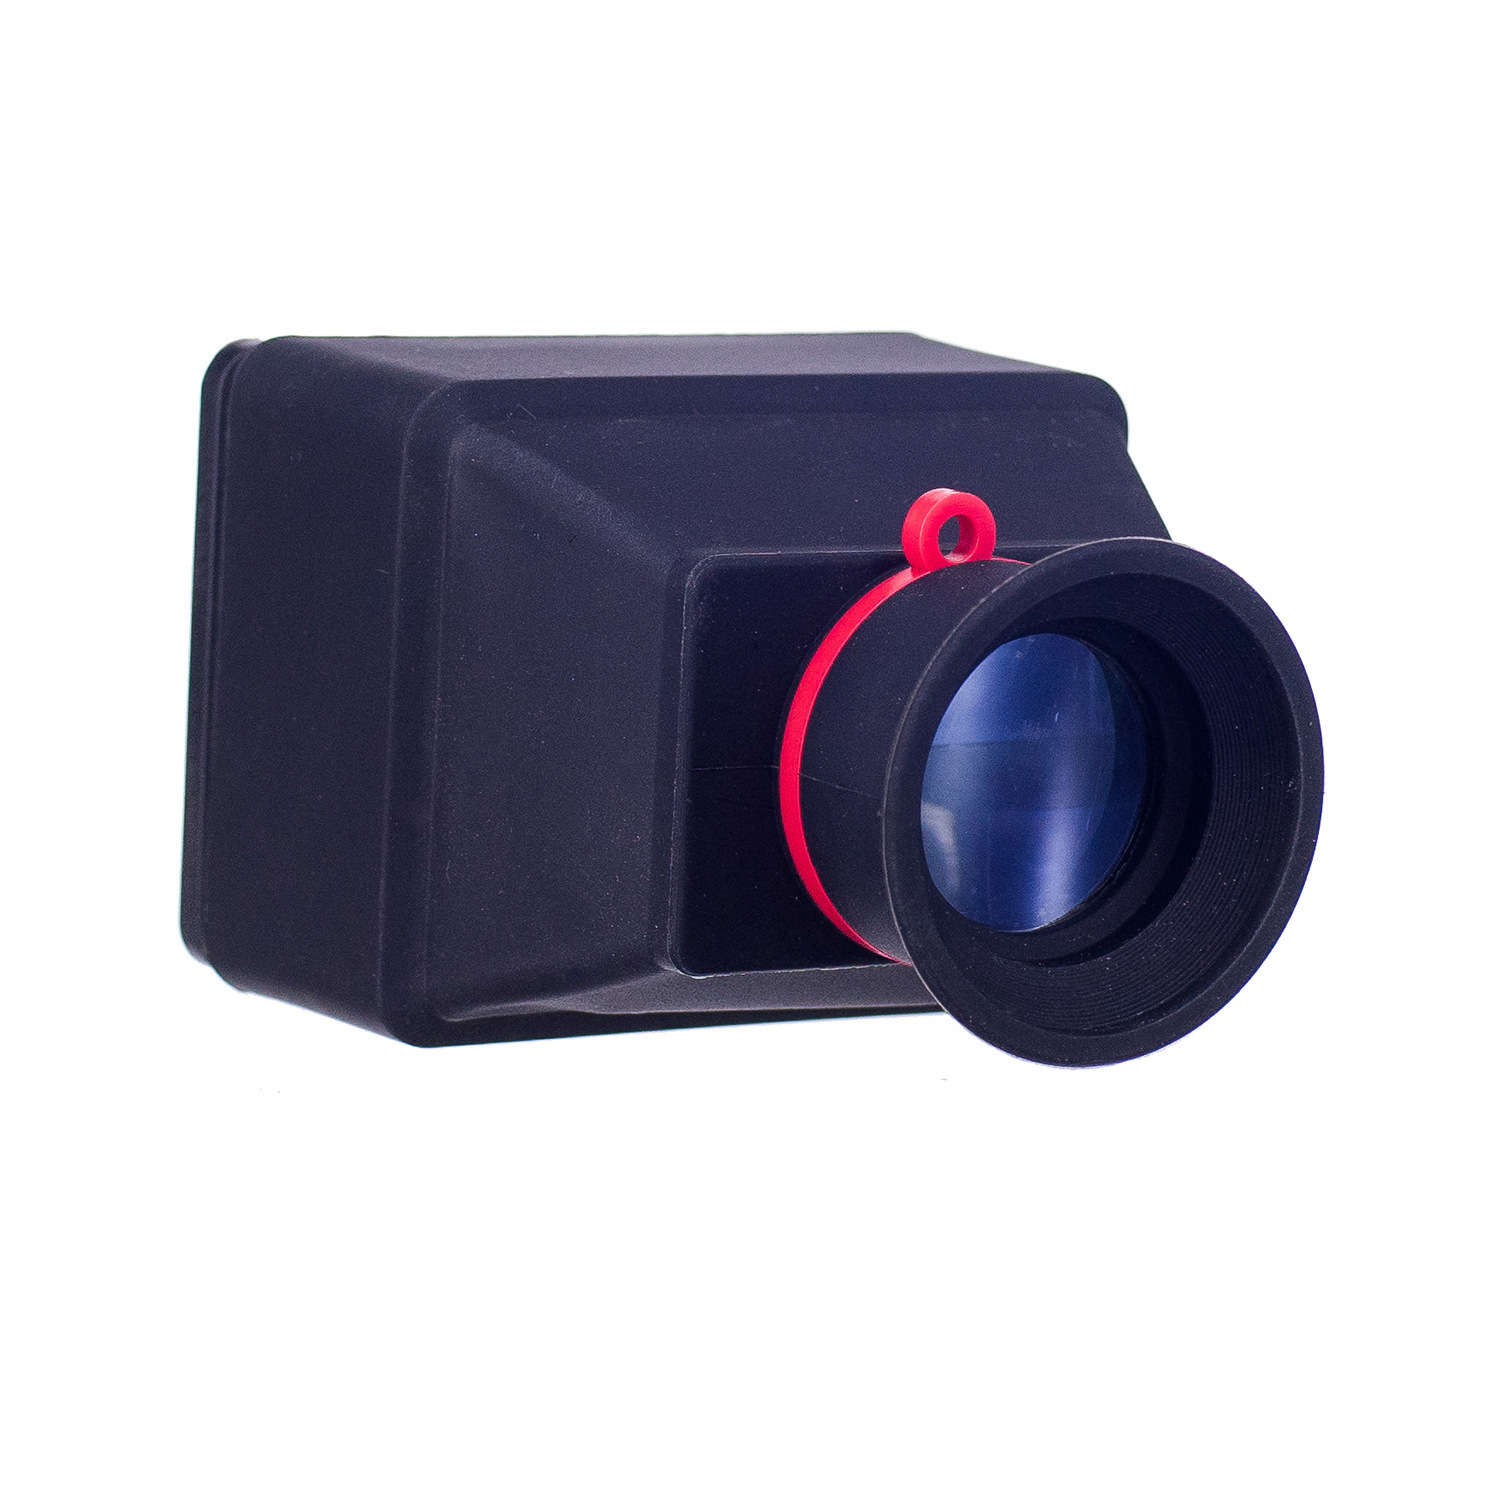 NEW 3.2 3.0 LCD 3x SLR Micro Single Screen Zoom Viewfinder Shading/Sun Mask For DSLR Mirrorless Cameras For Canon Nikon Camera